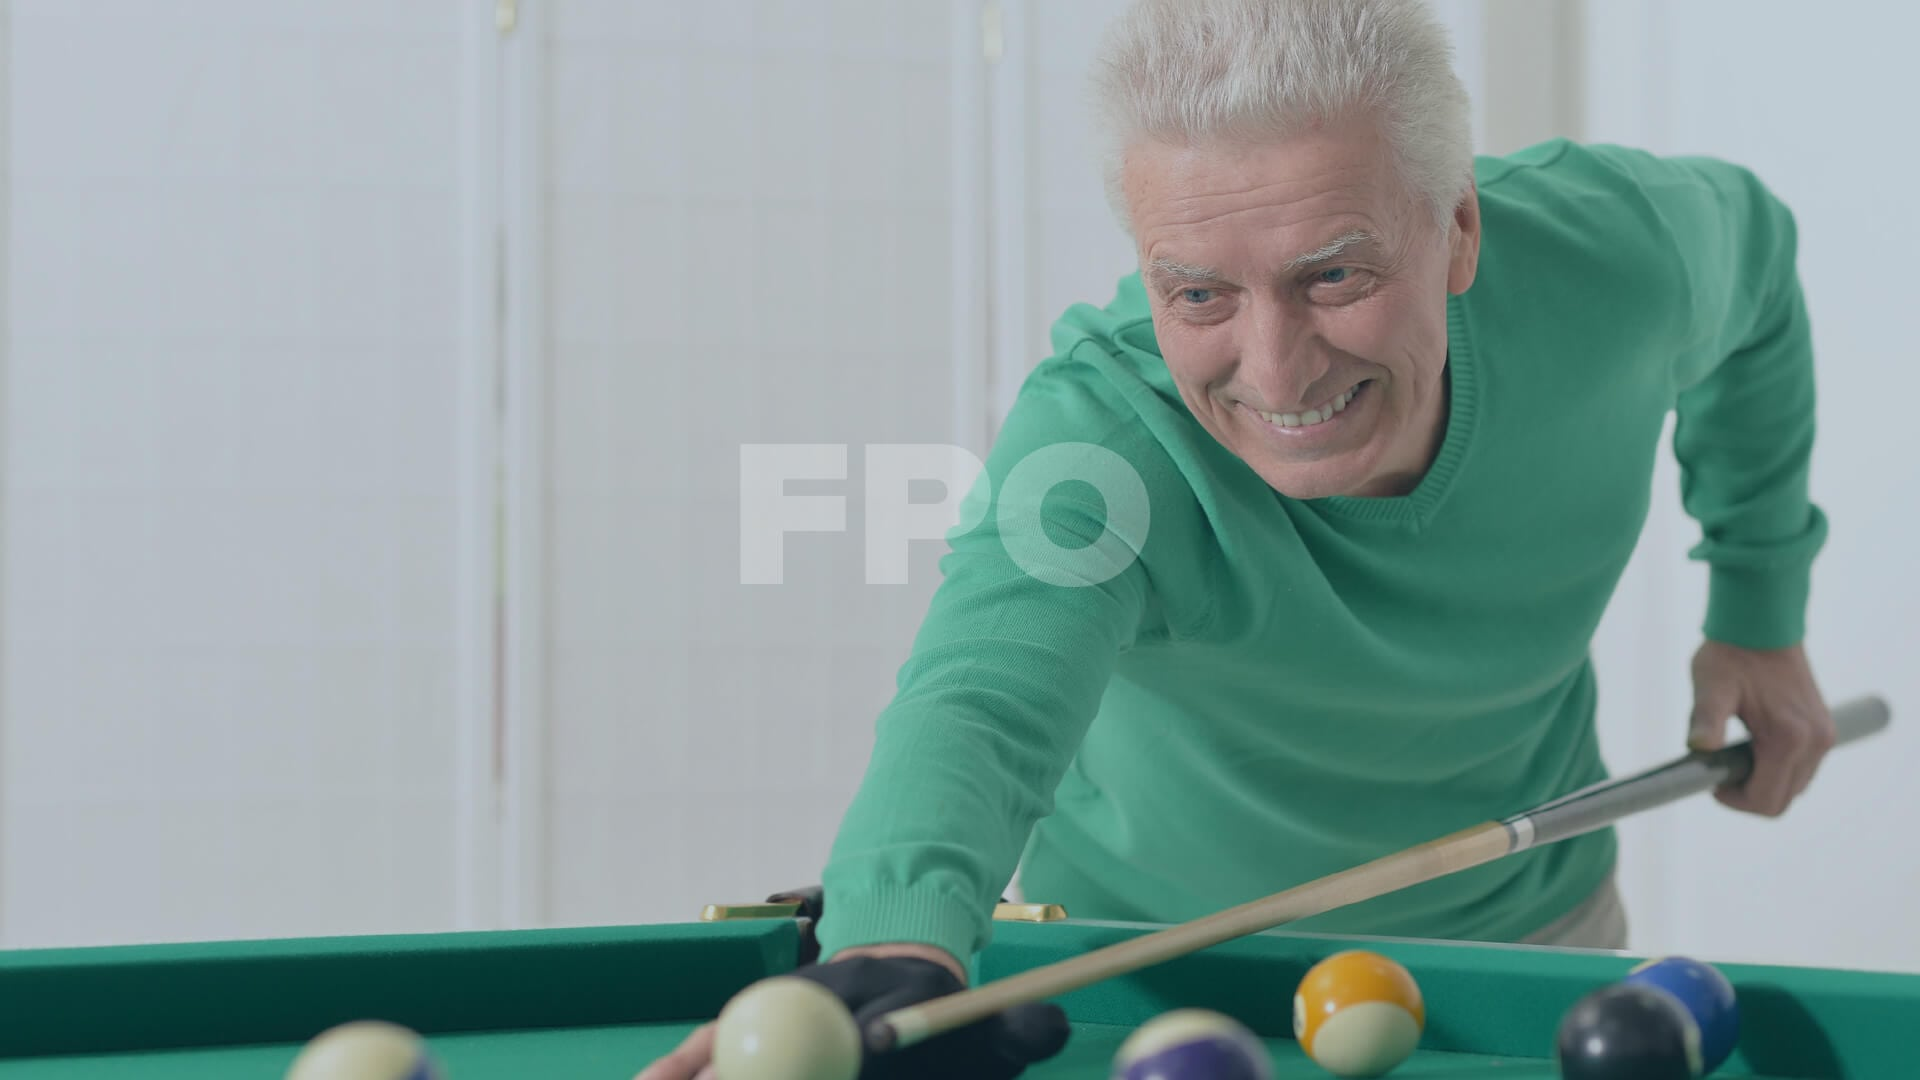 senior-aged man playing pool and smiling